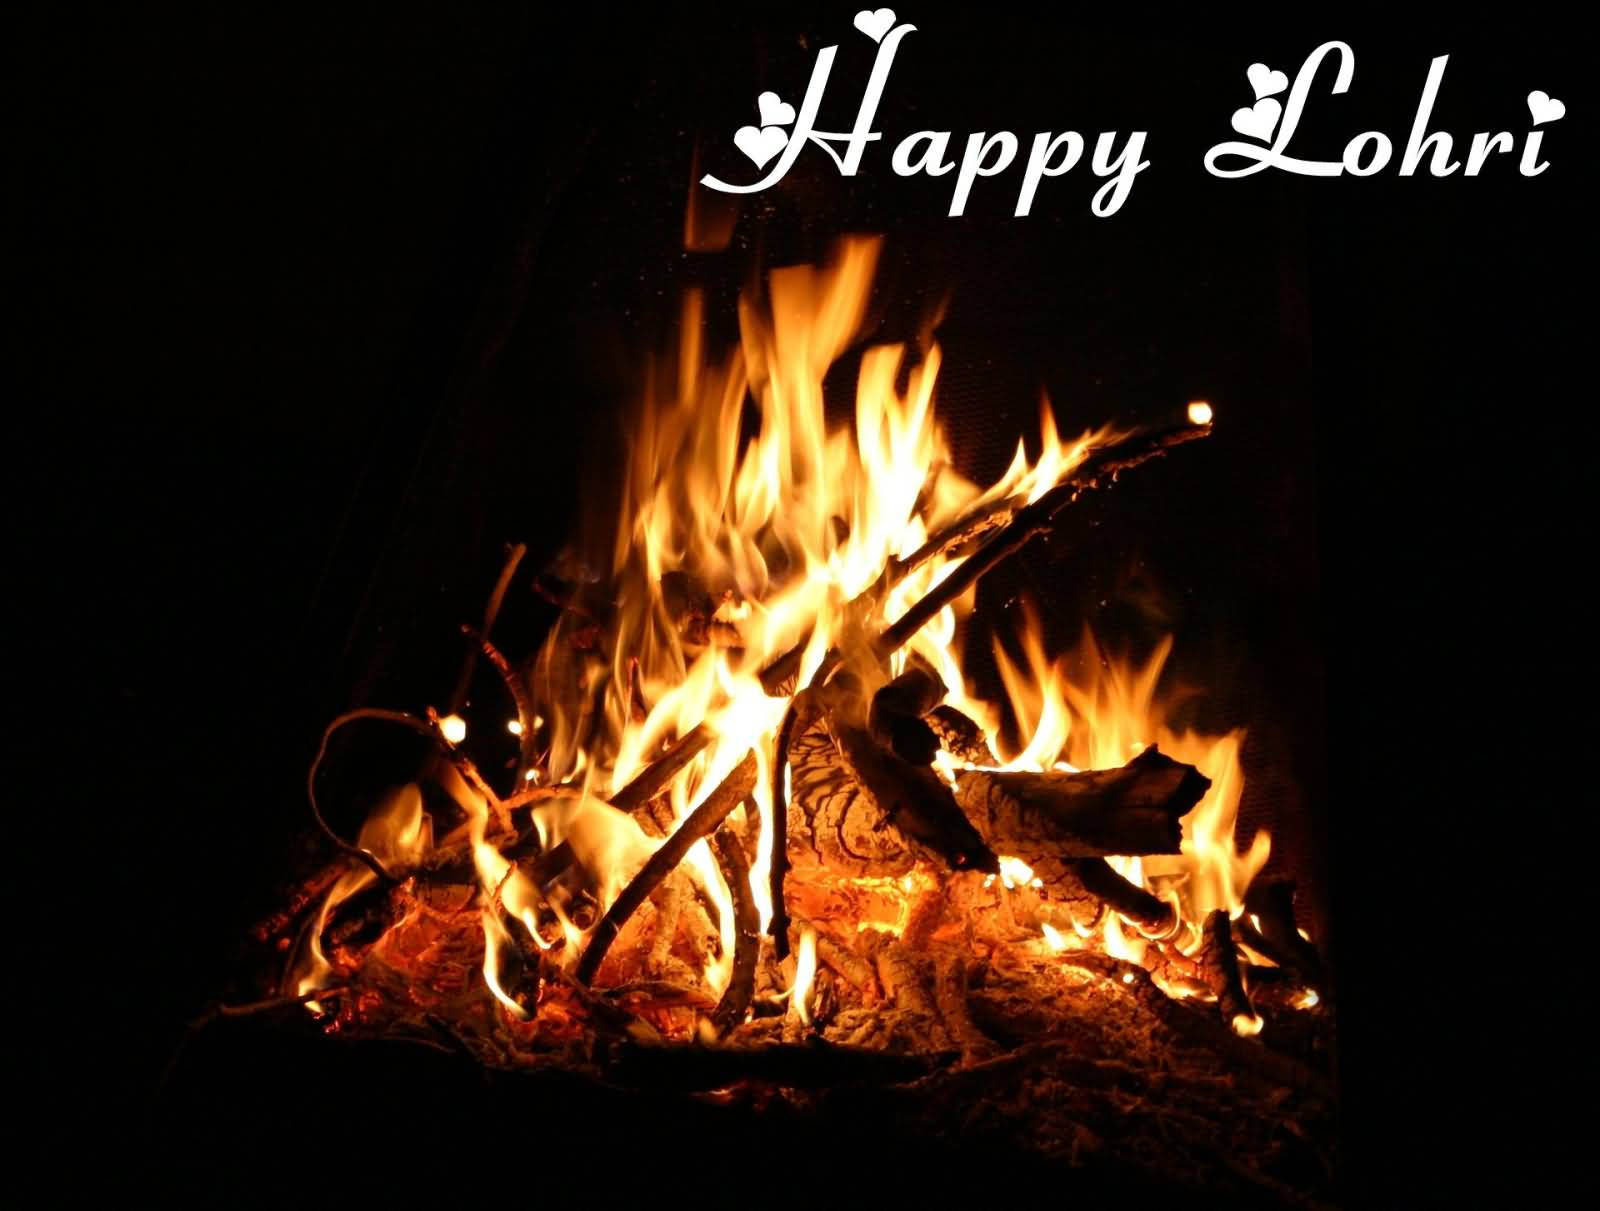 15-Happy Lohri Wishes